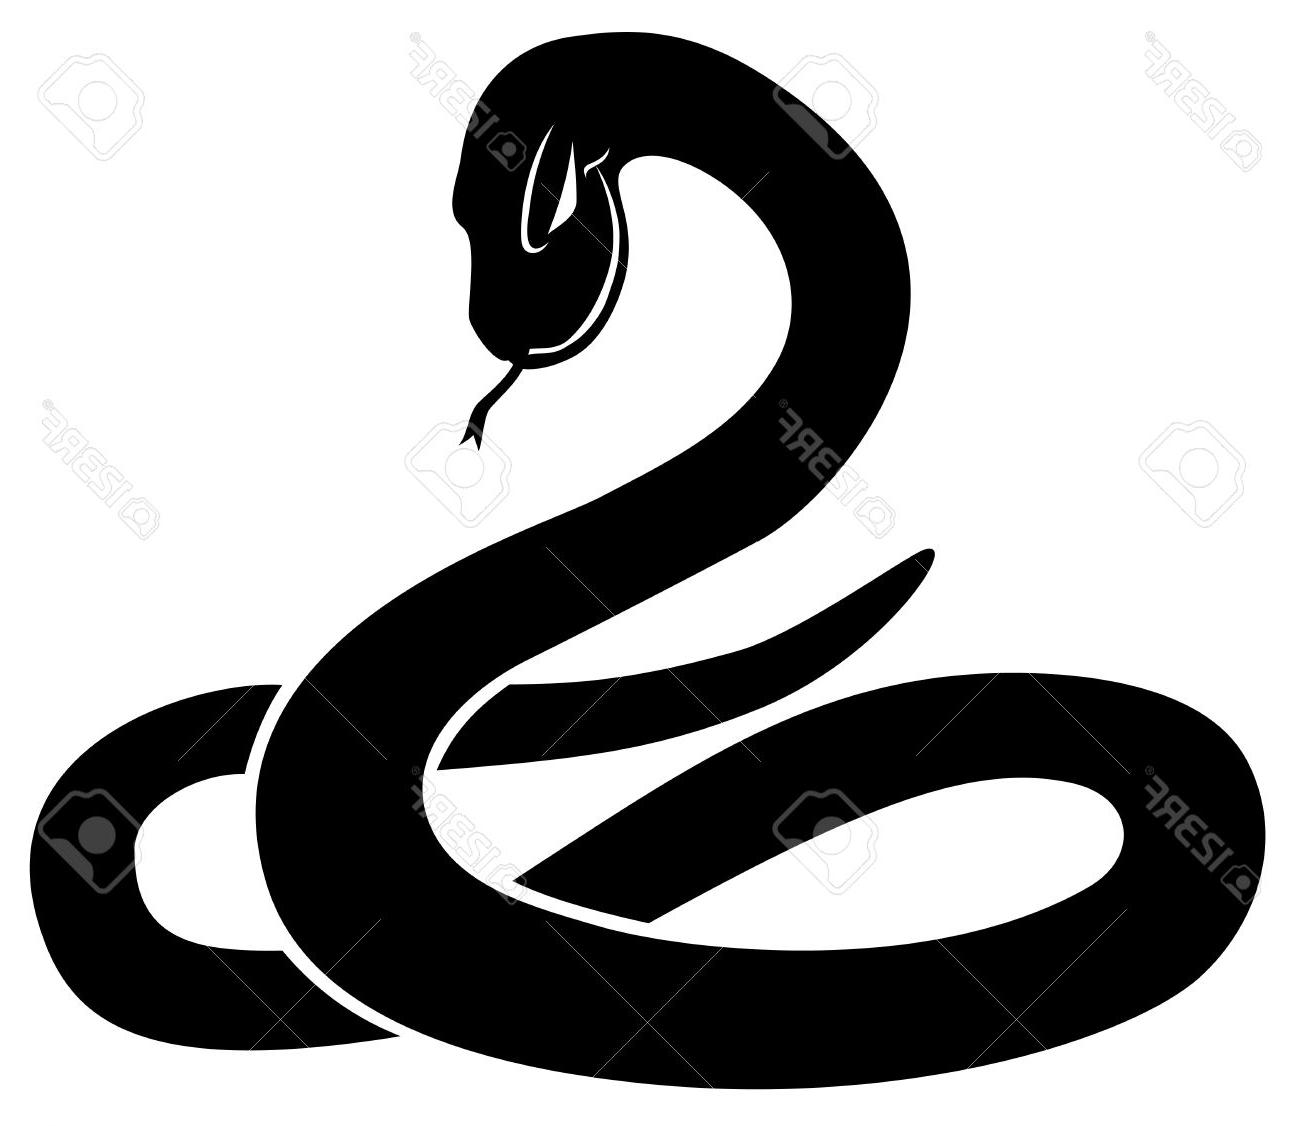 Snake Silhouette Vector At Getdrawings Com Free For